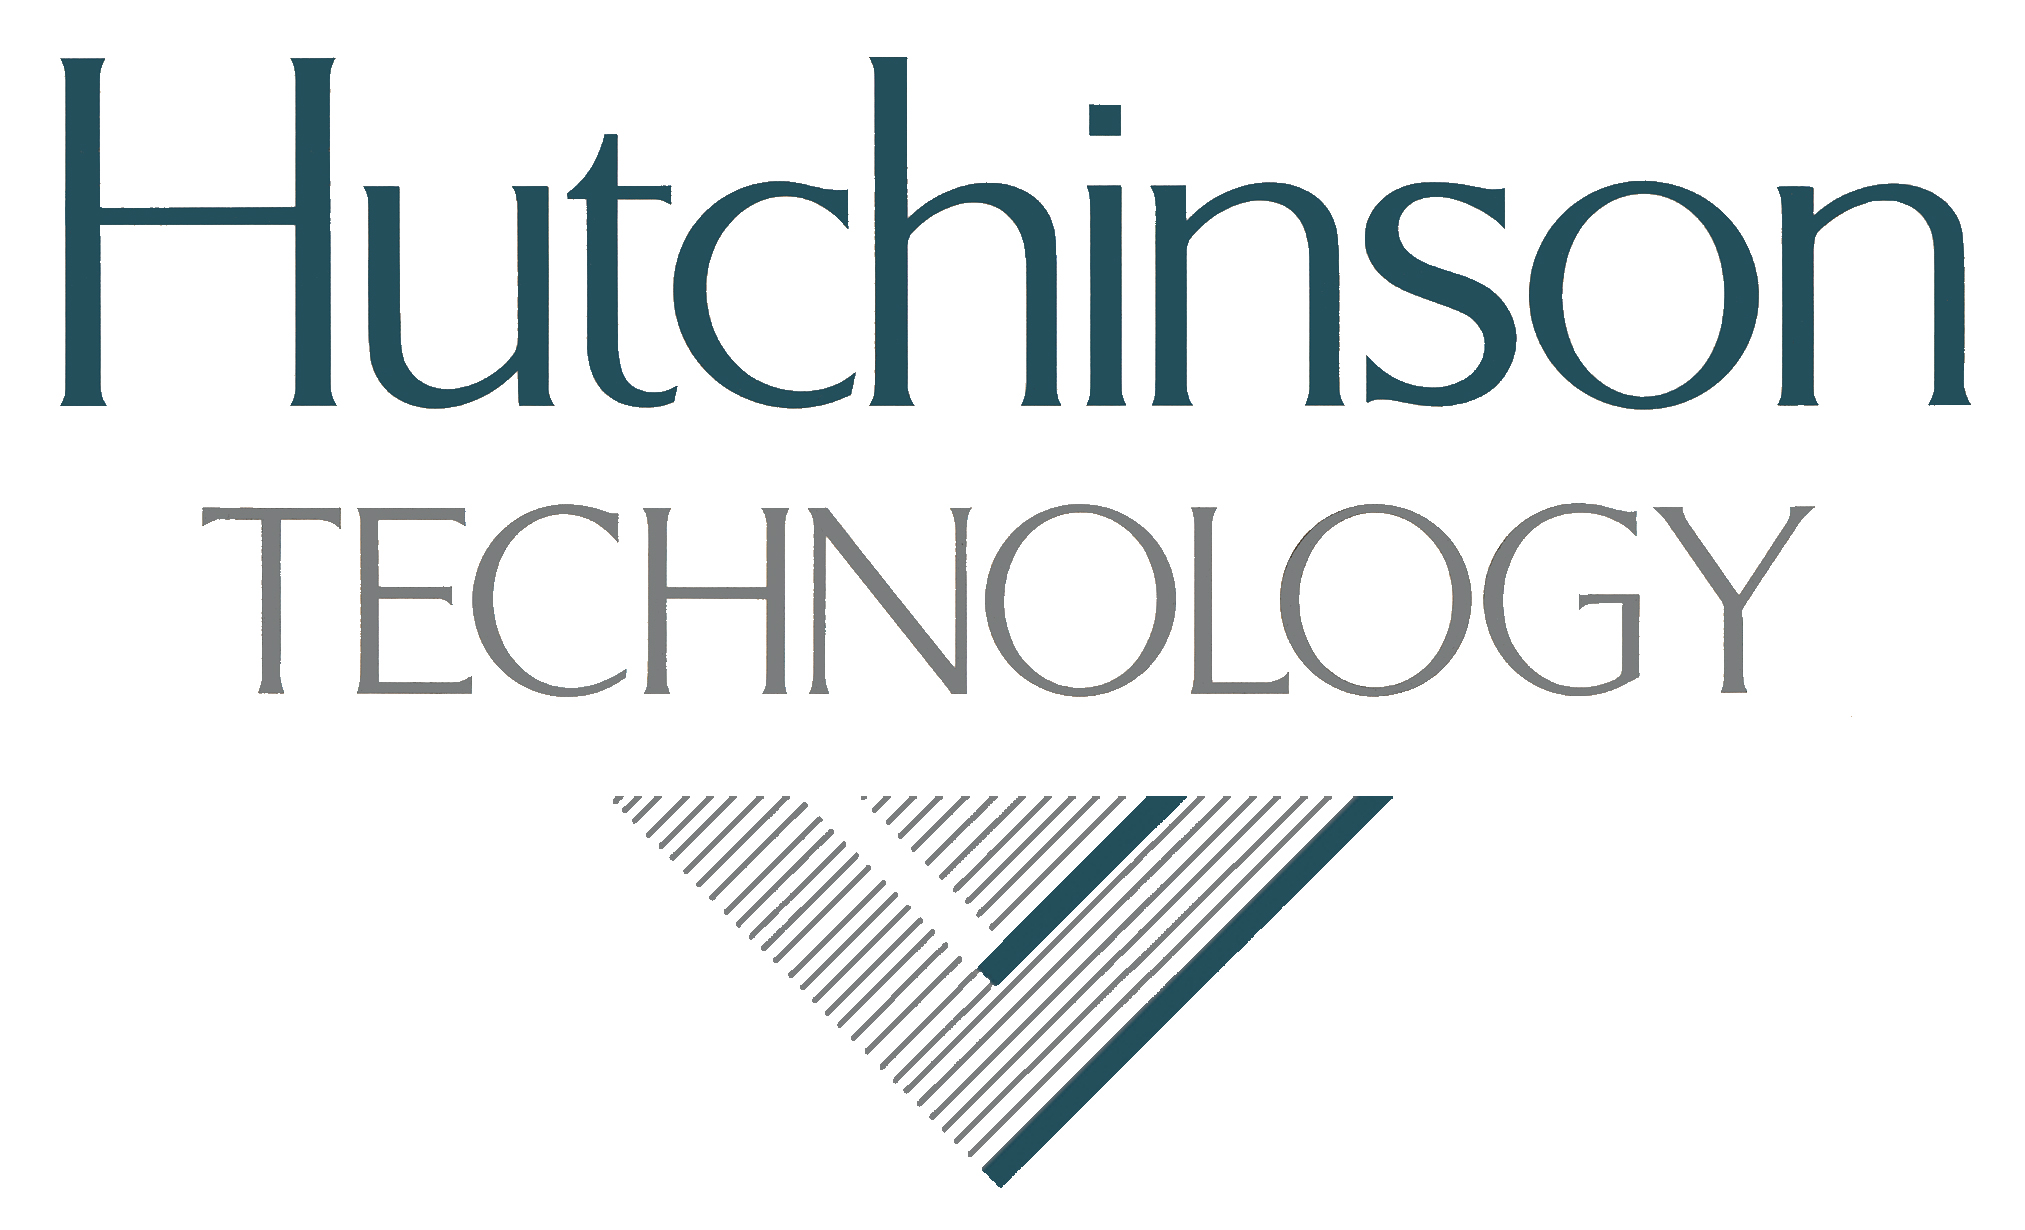 Hutchinson Technology Provides Update on Legal and Regulatory Actions